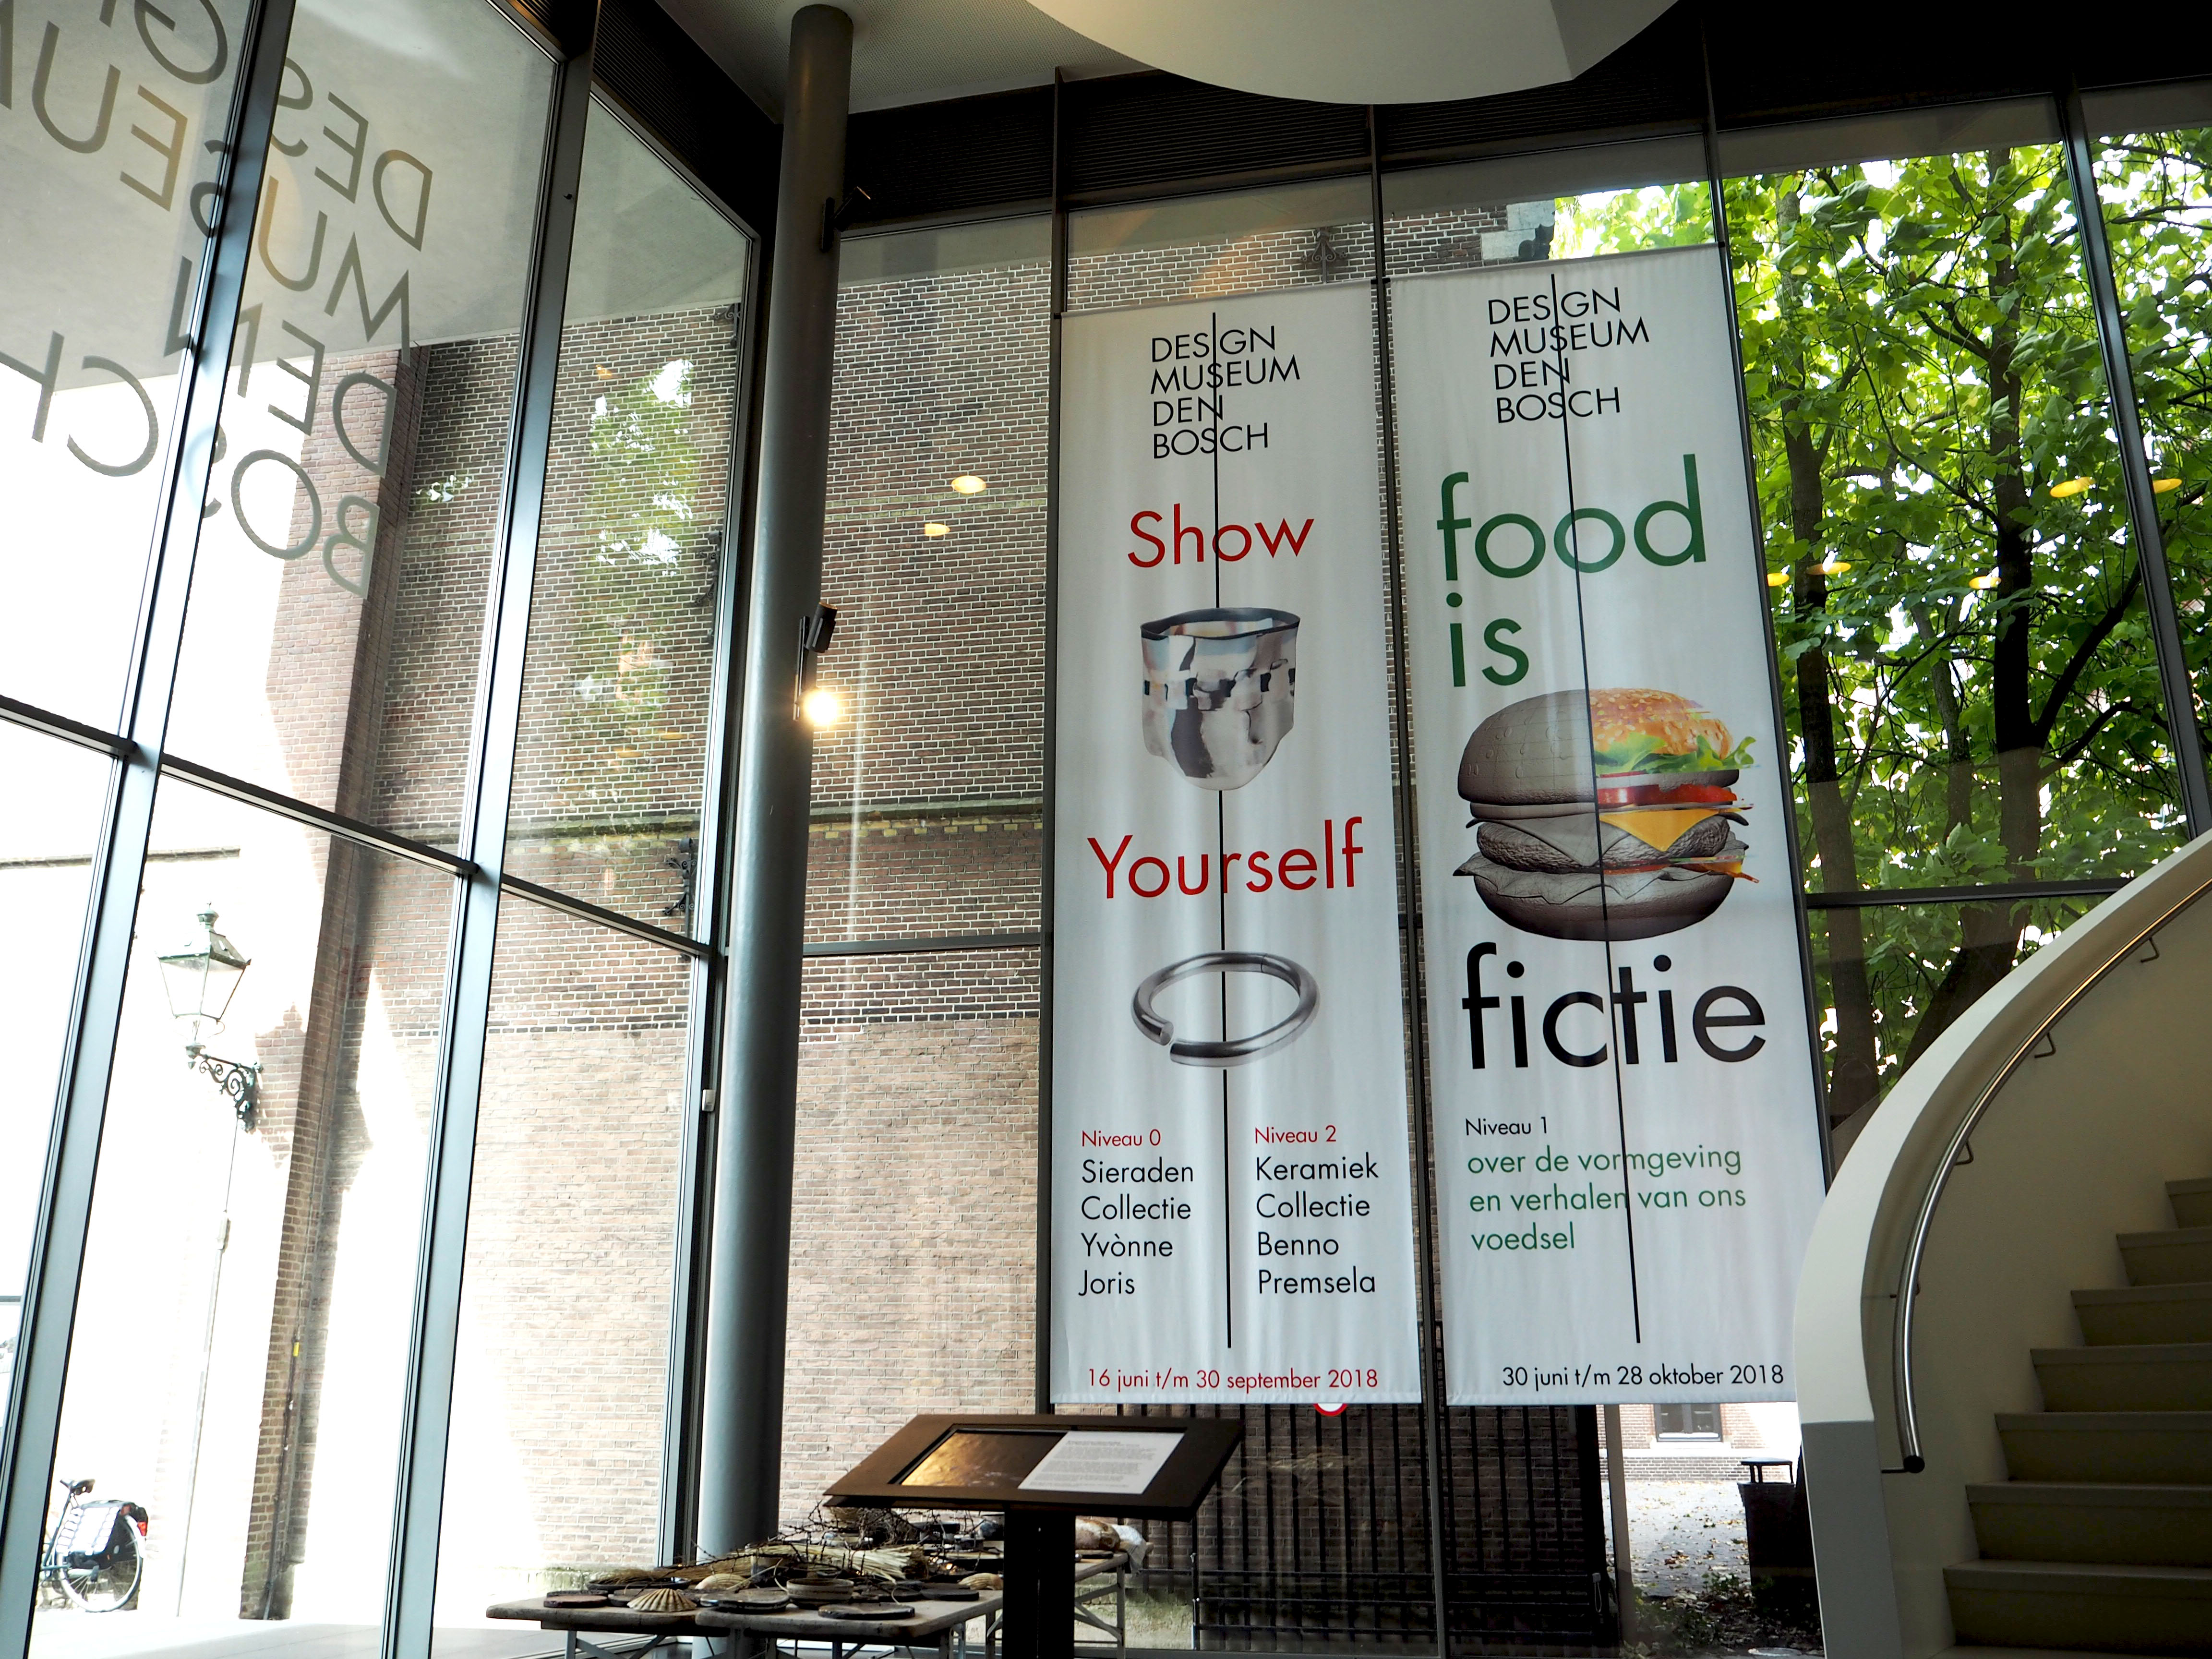 design museum den bosch food is fictie